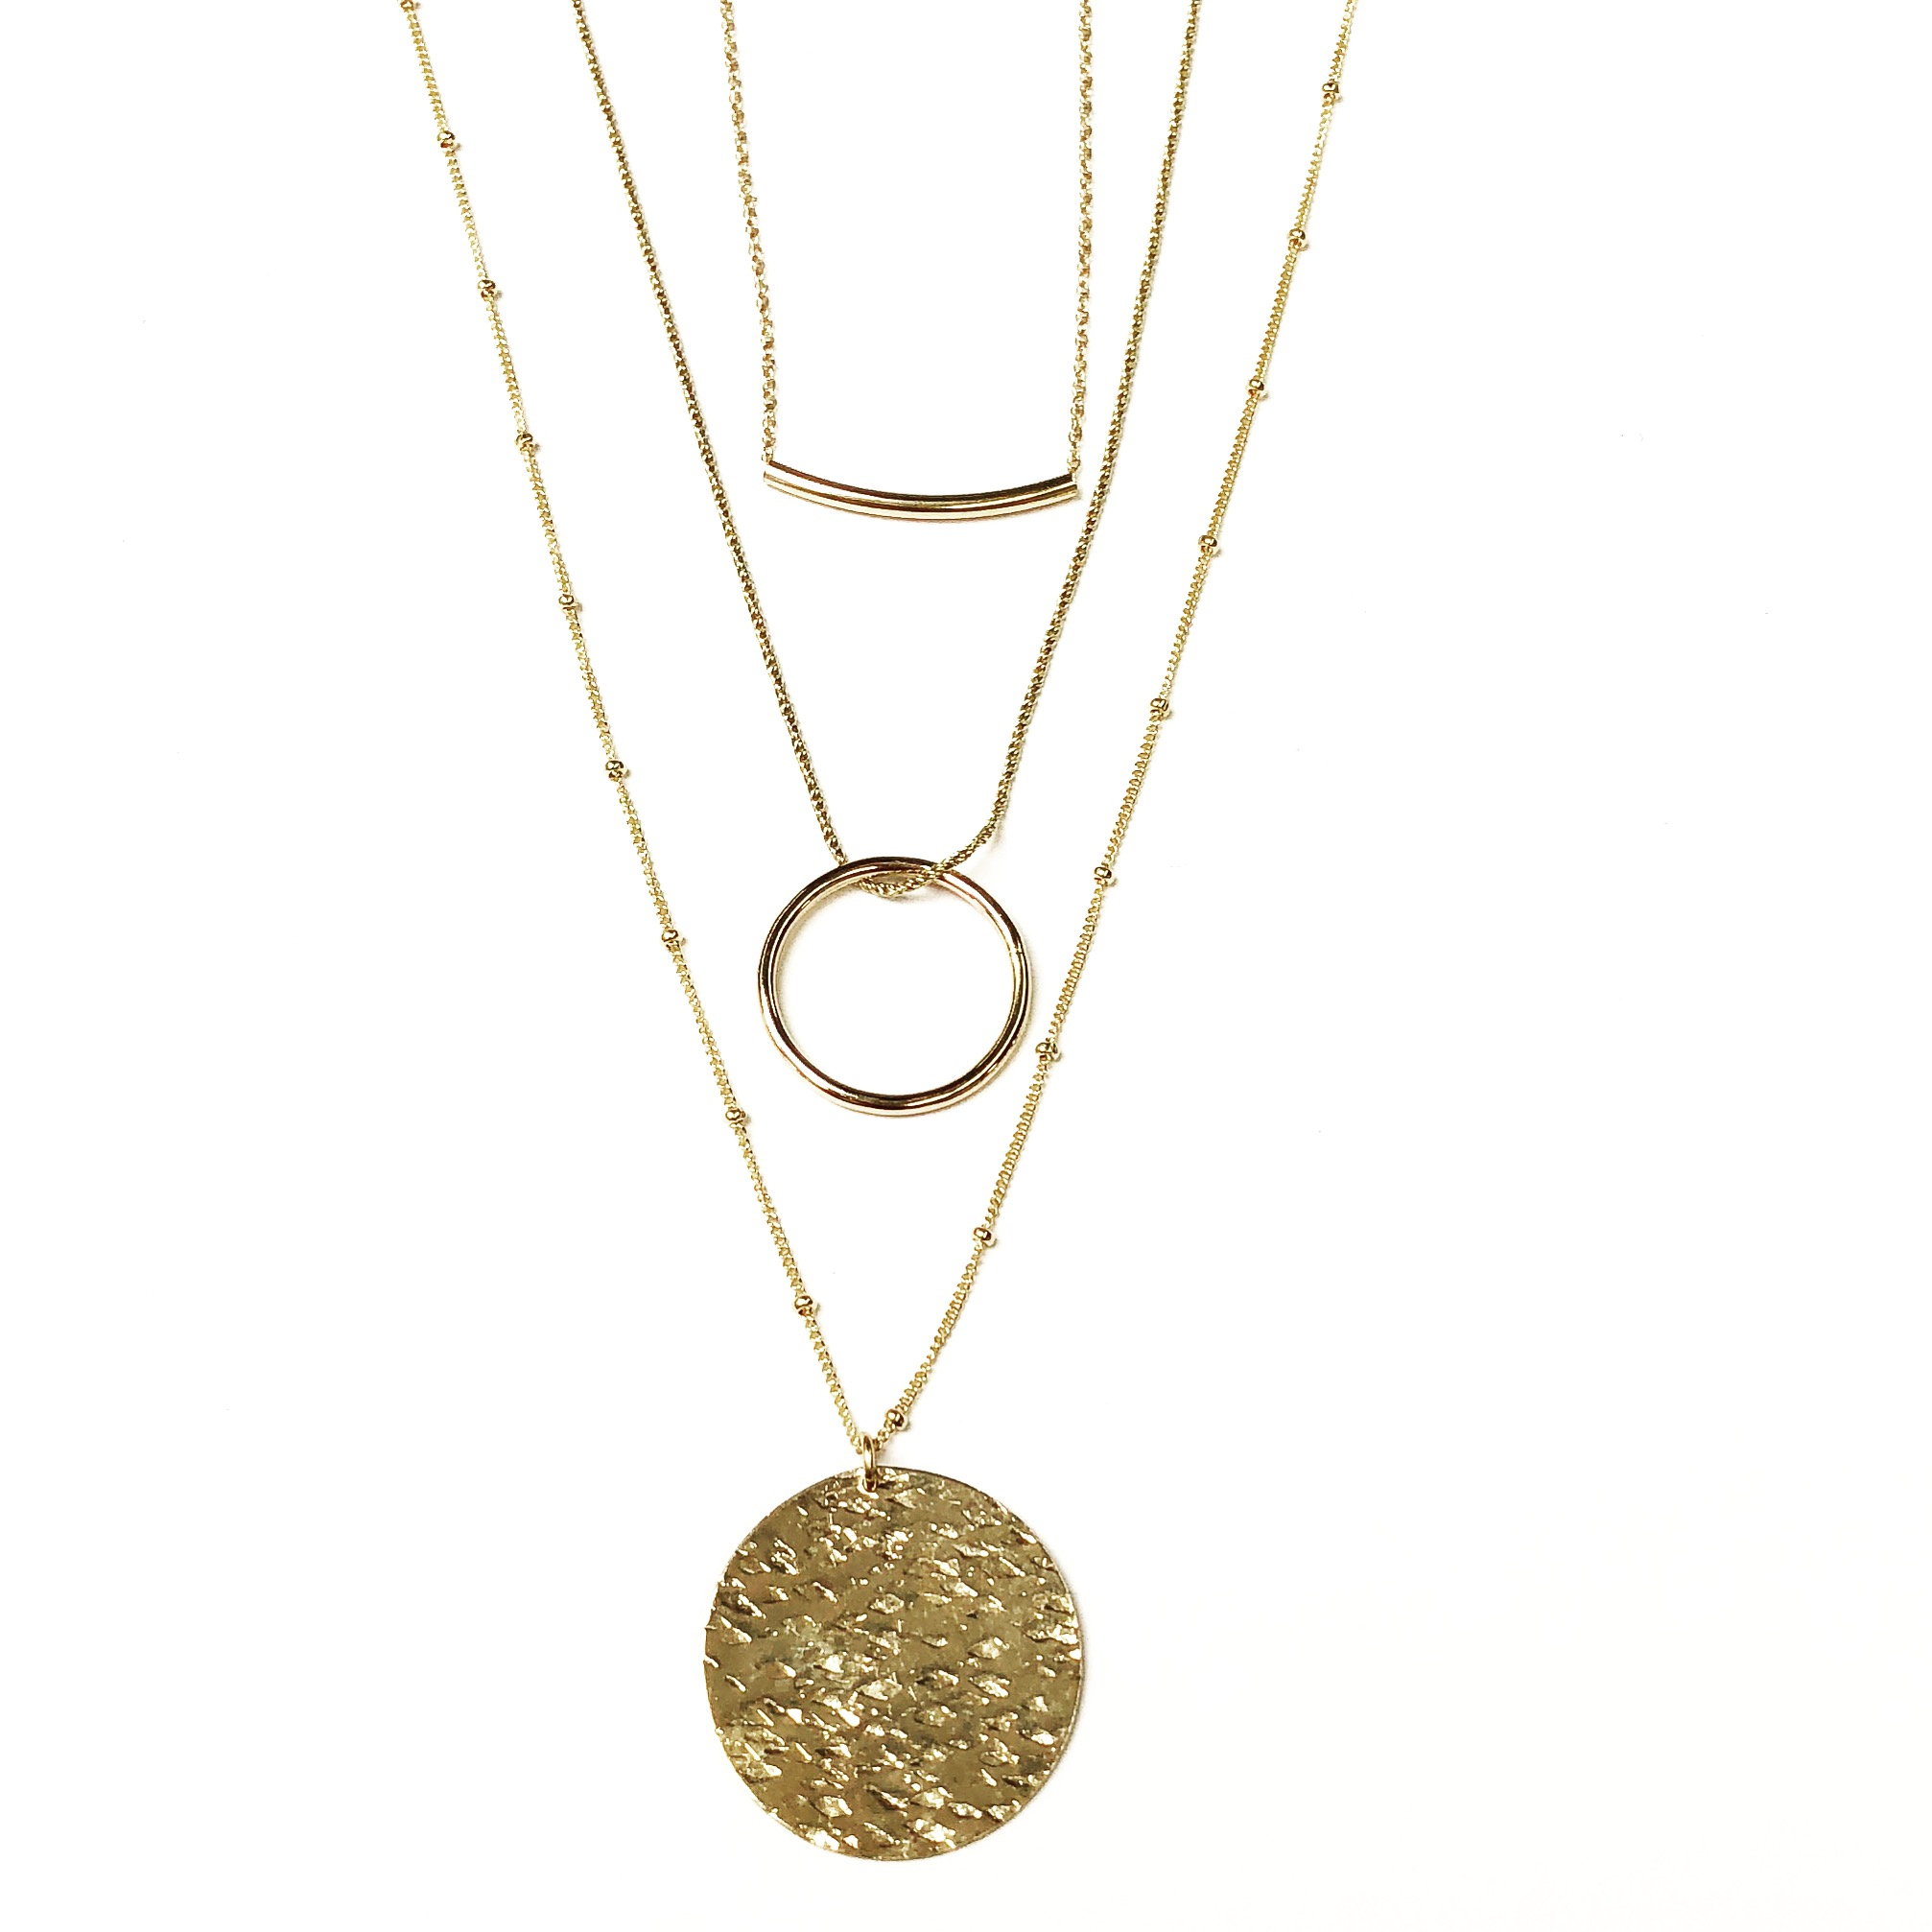 Necklace layers Riona Joie Cassidy 14k gold fill best sellers.JPG